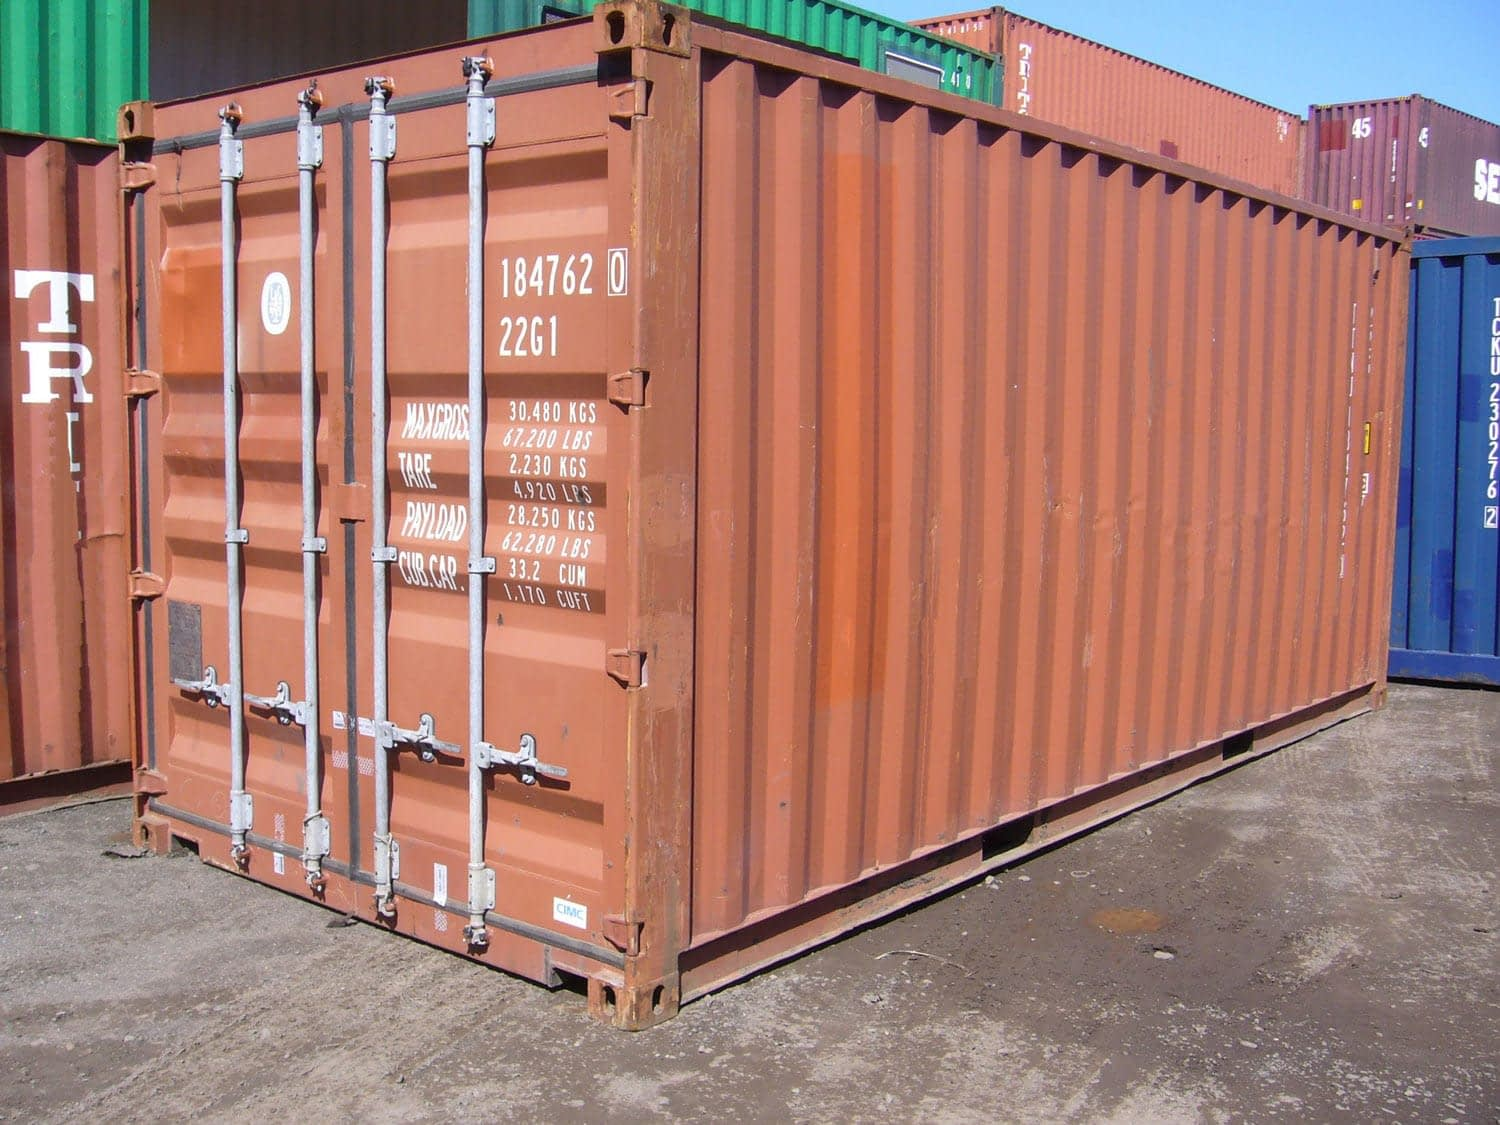 TRS Containers Grade A cargo container for export or ground storage